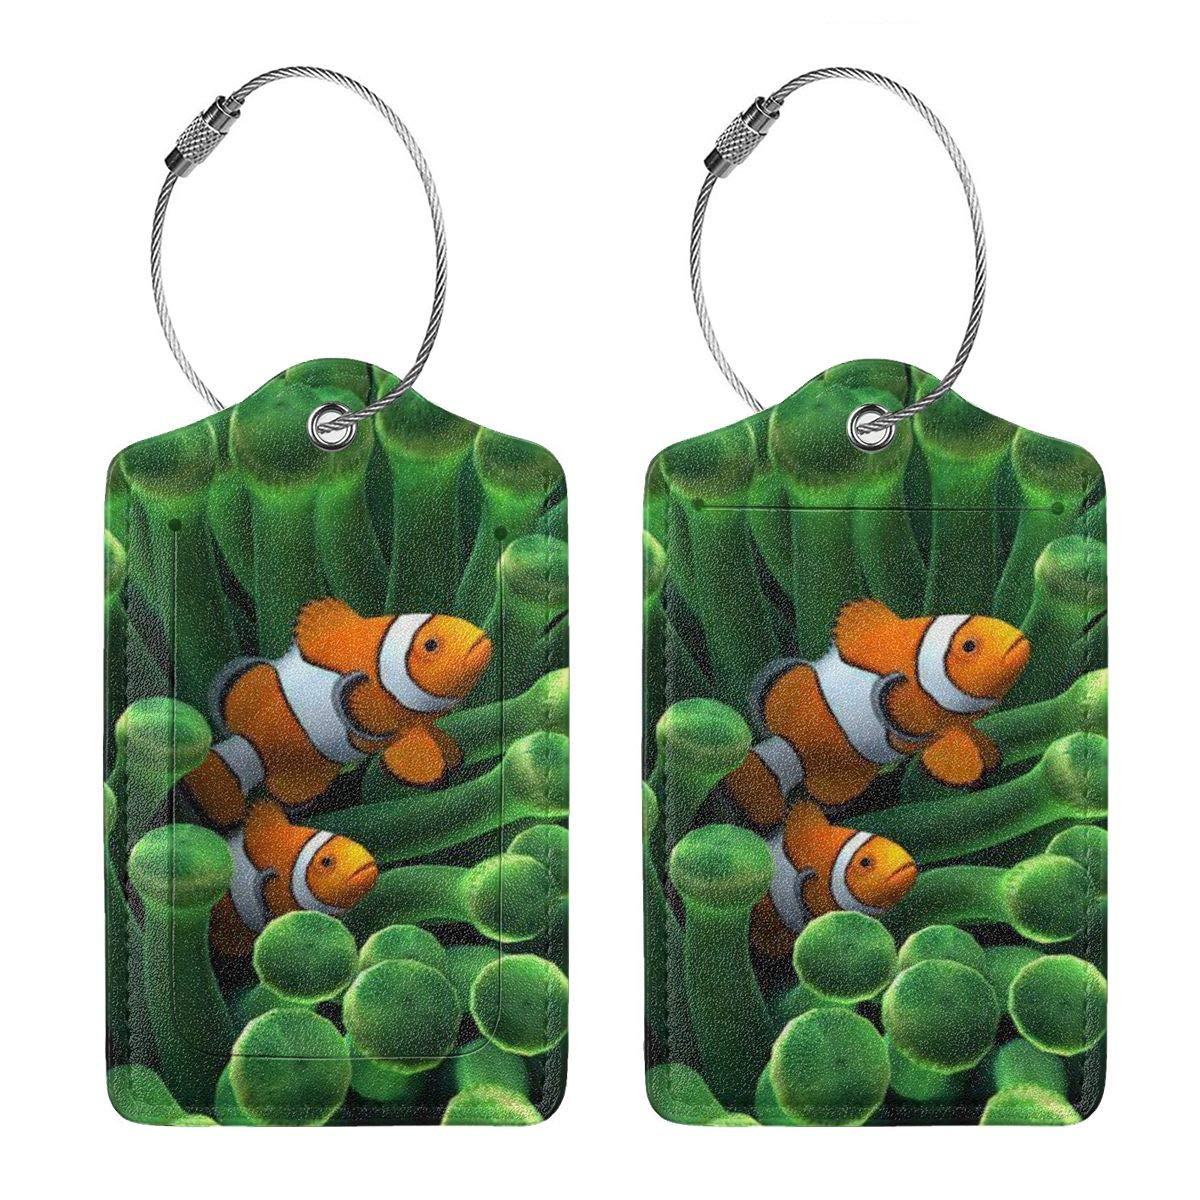 Underwater World With Fish Luggage Tags With Full Back Privacy Cover W//Steel Loops